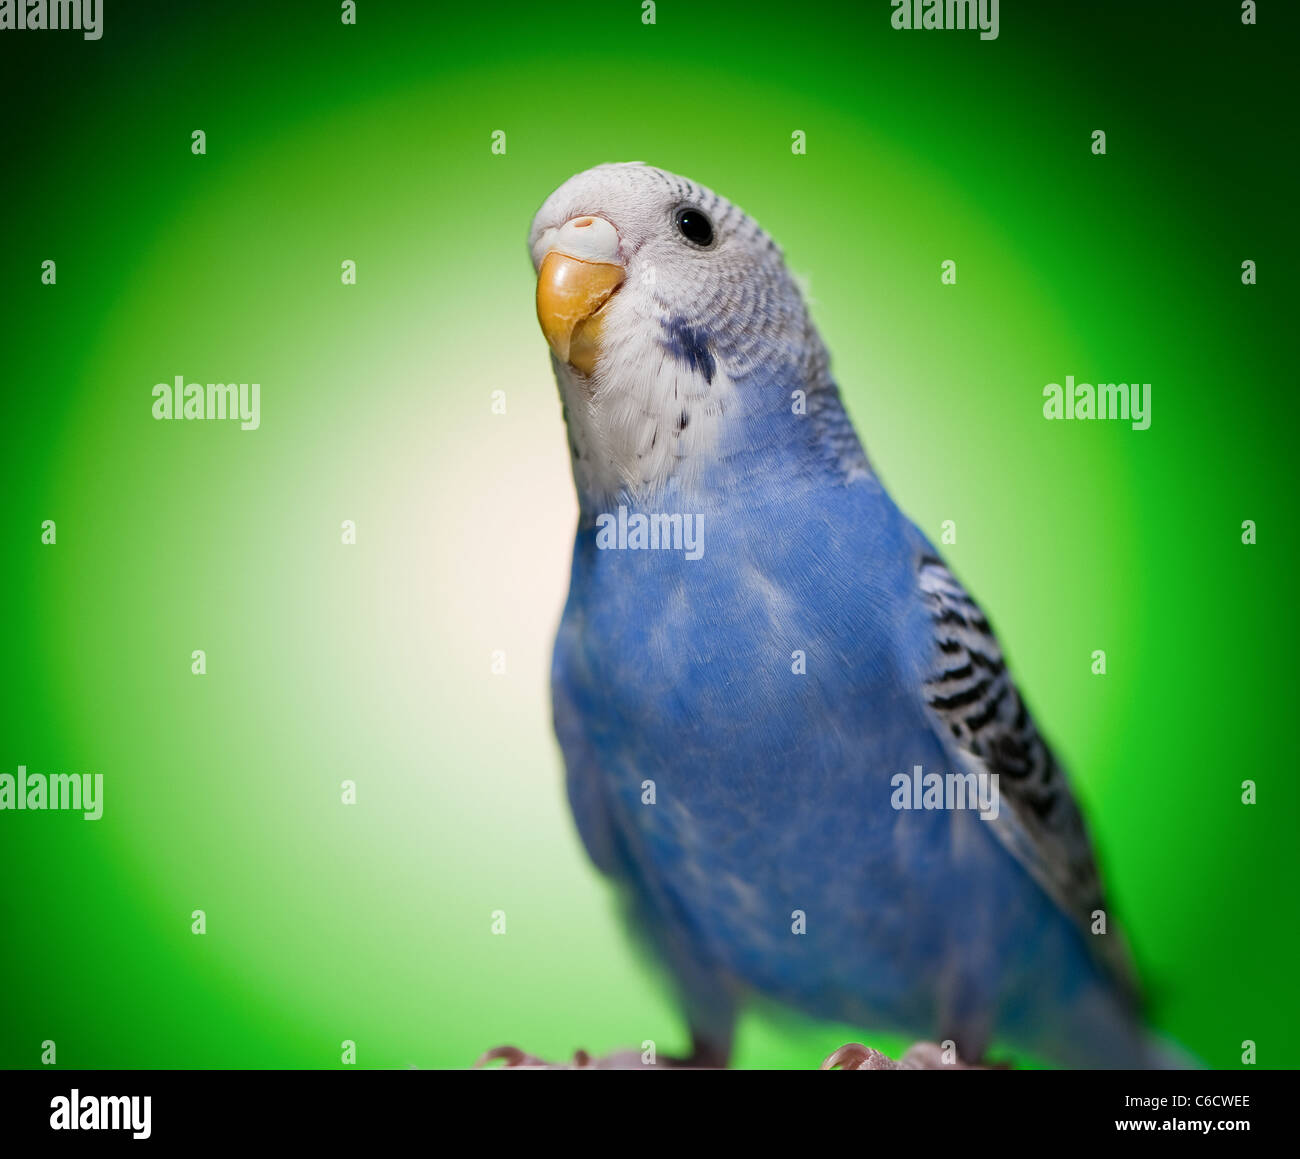 one blue budgies parrot on green background Stock Photo